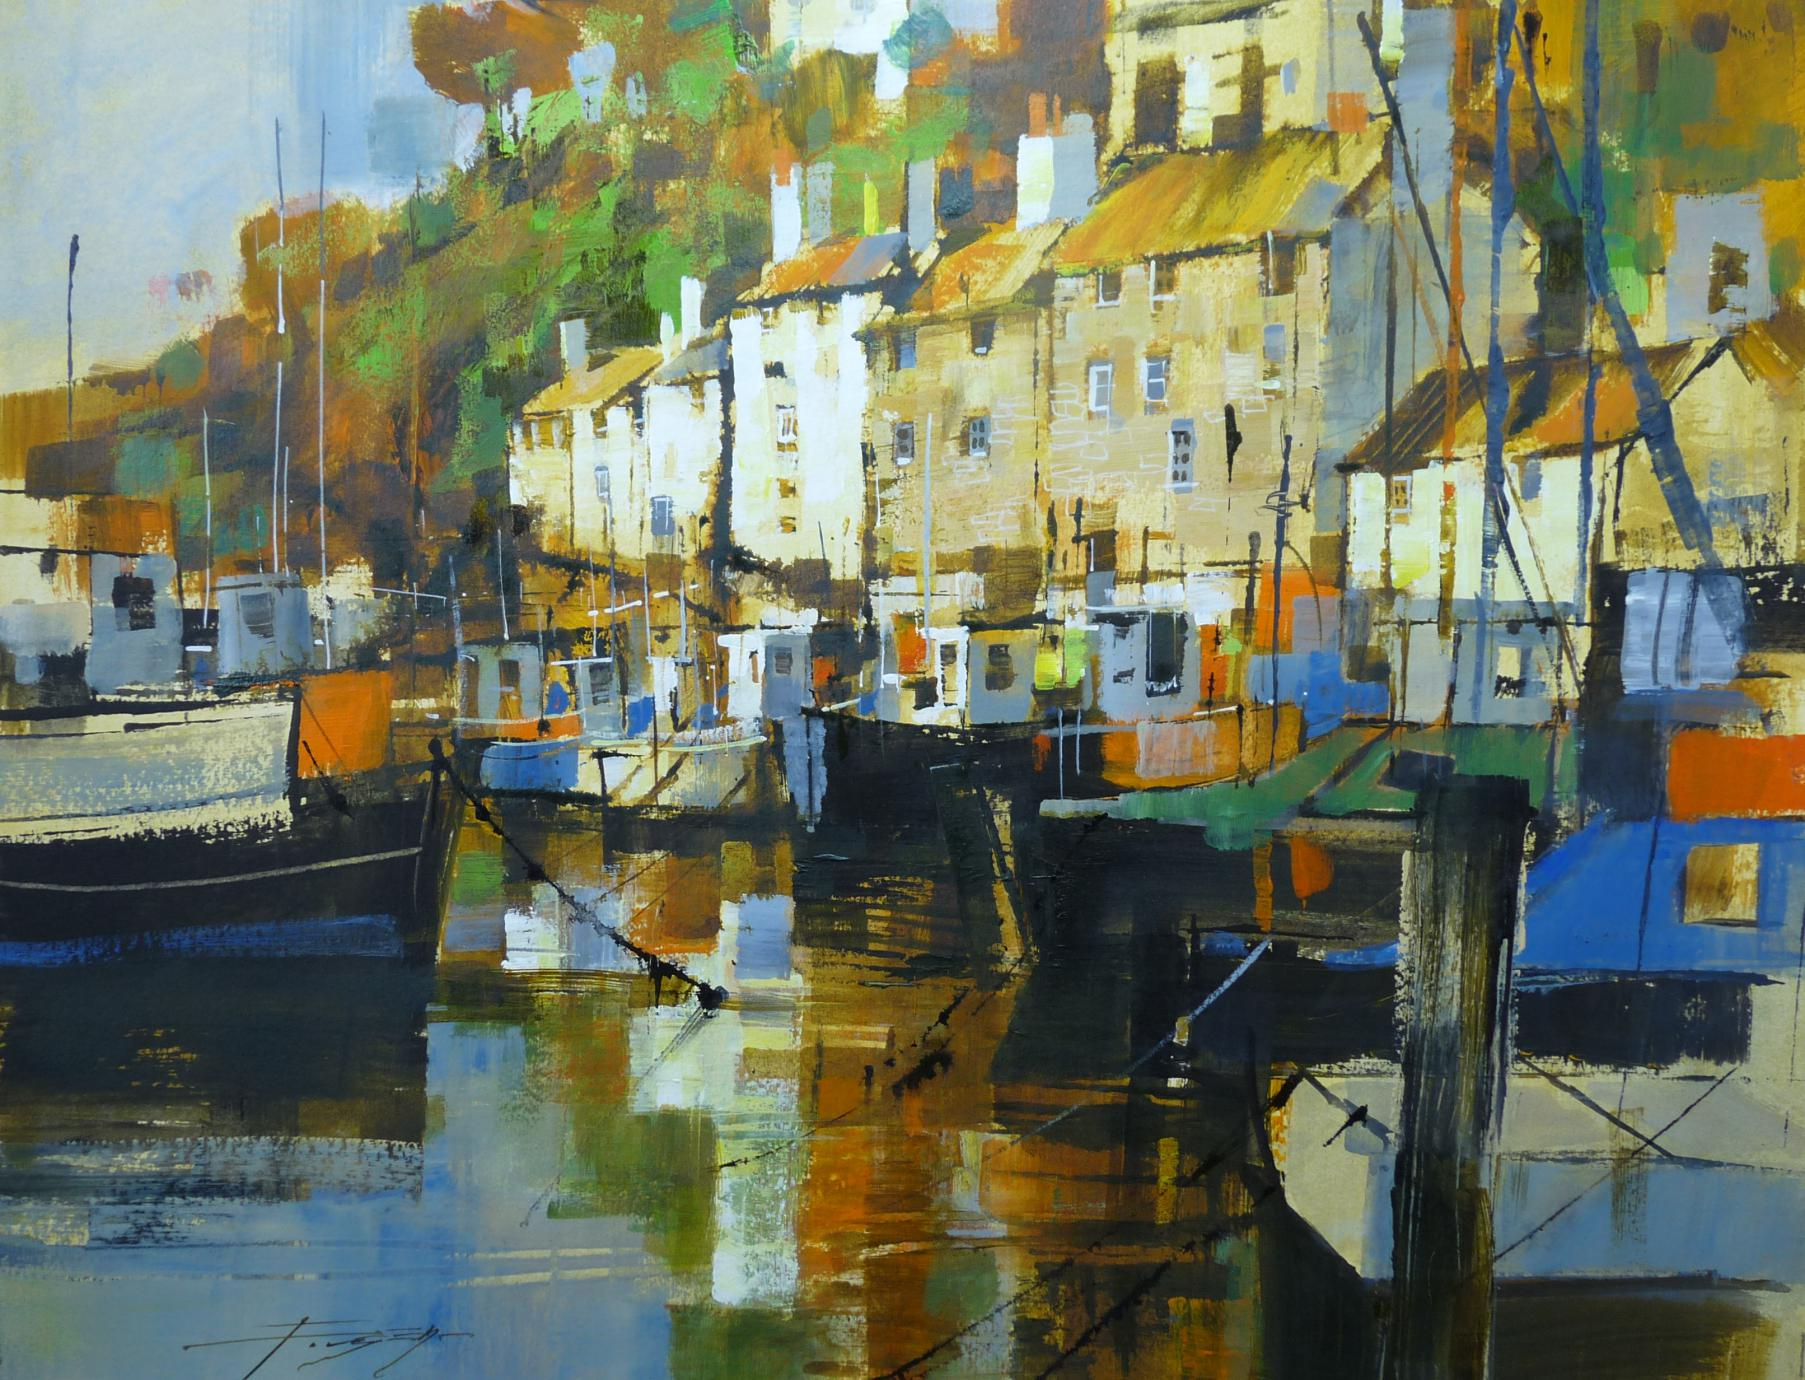 Colour and reflection, Polperro by Chris Forsey